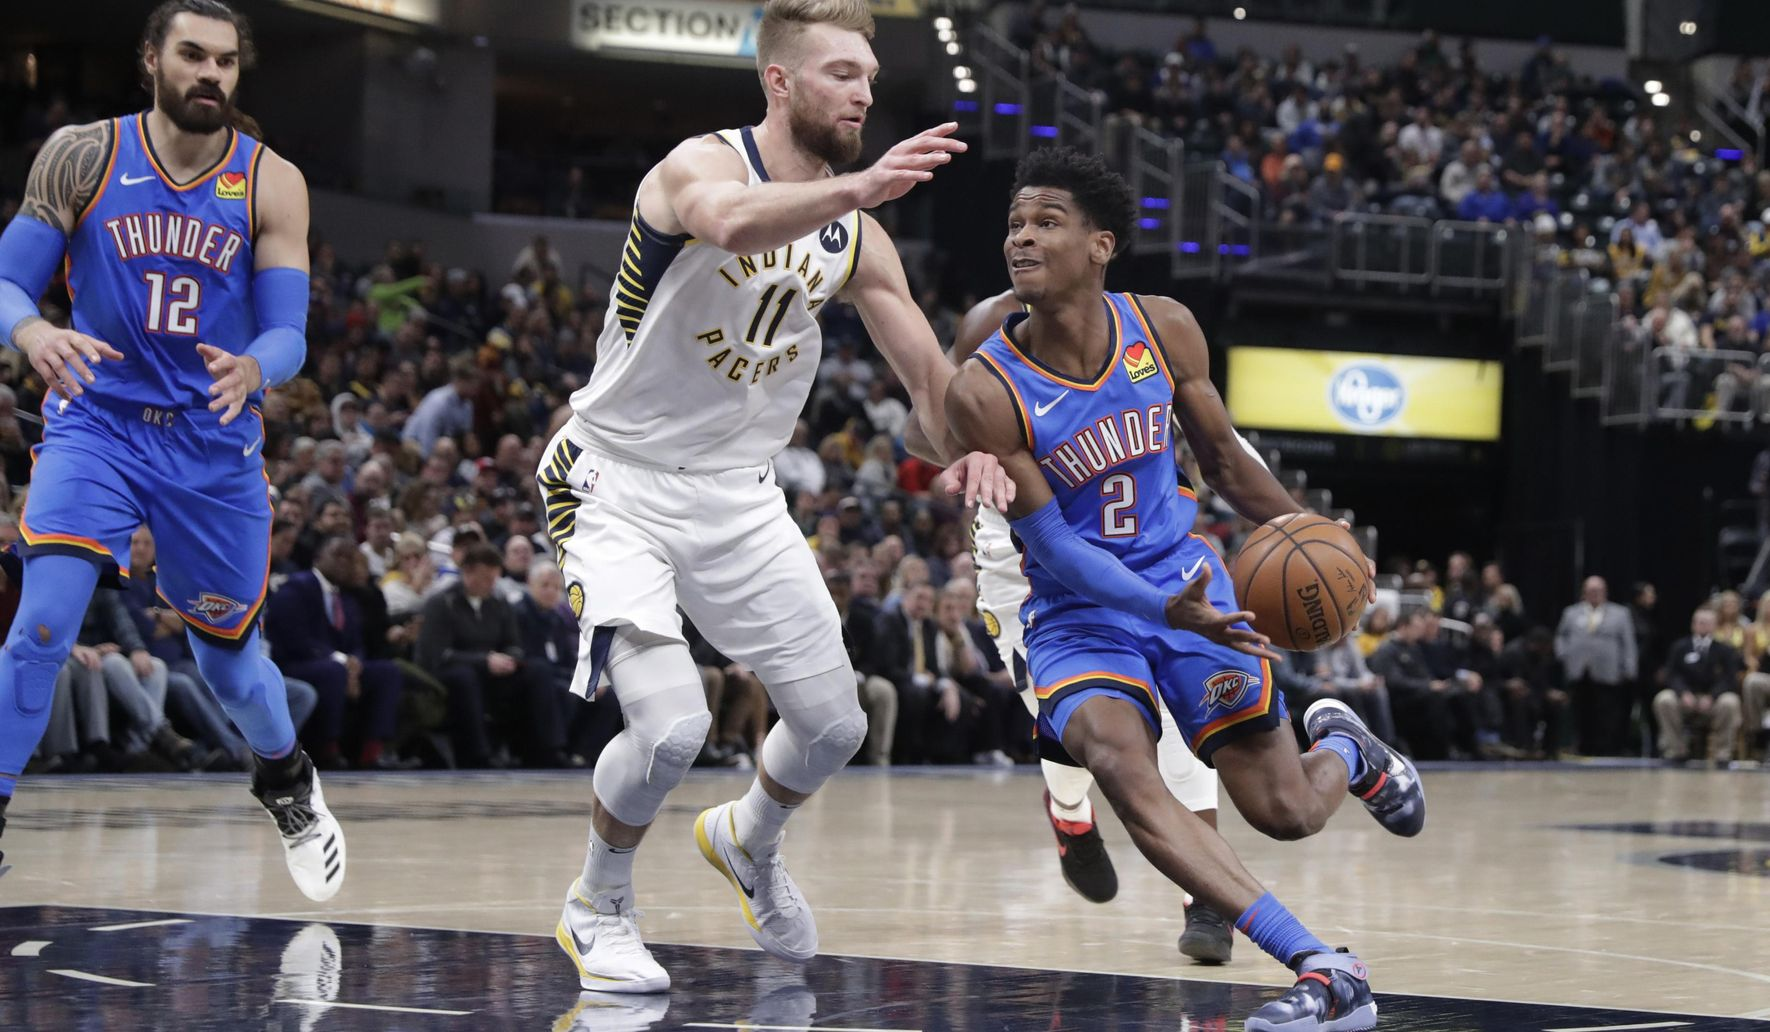 Thunder_pacers_basketball_14756_c0-155-3694-2308_s1770x1032